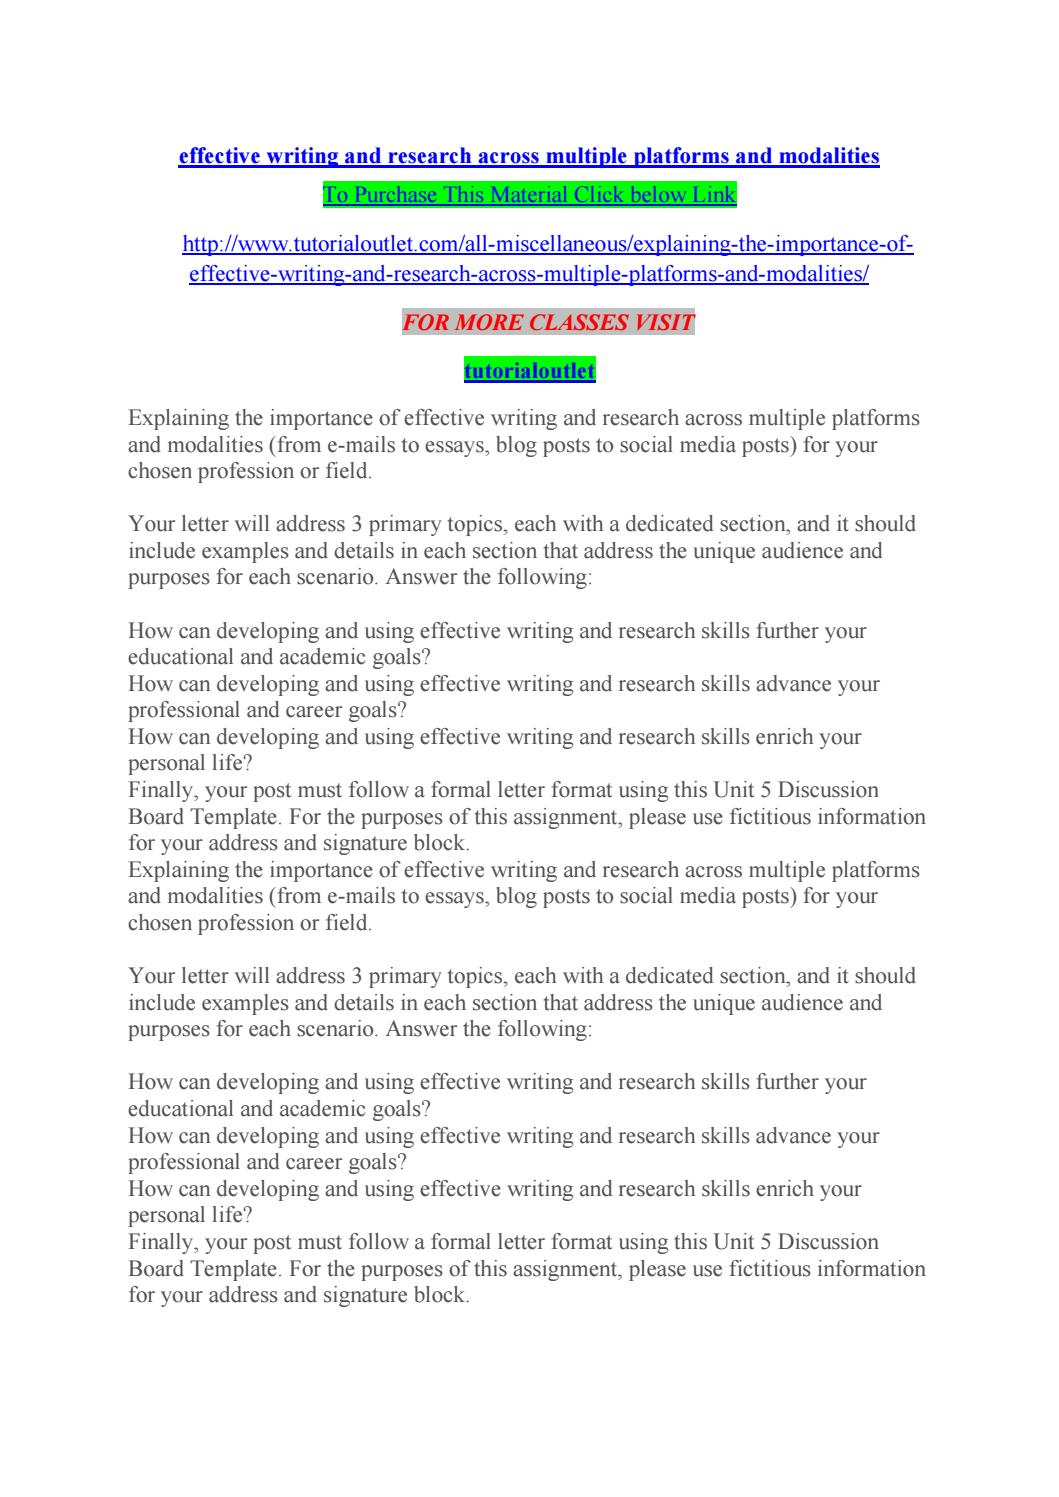 essay on academic goals and professional goals